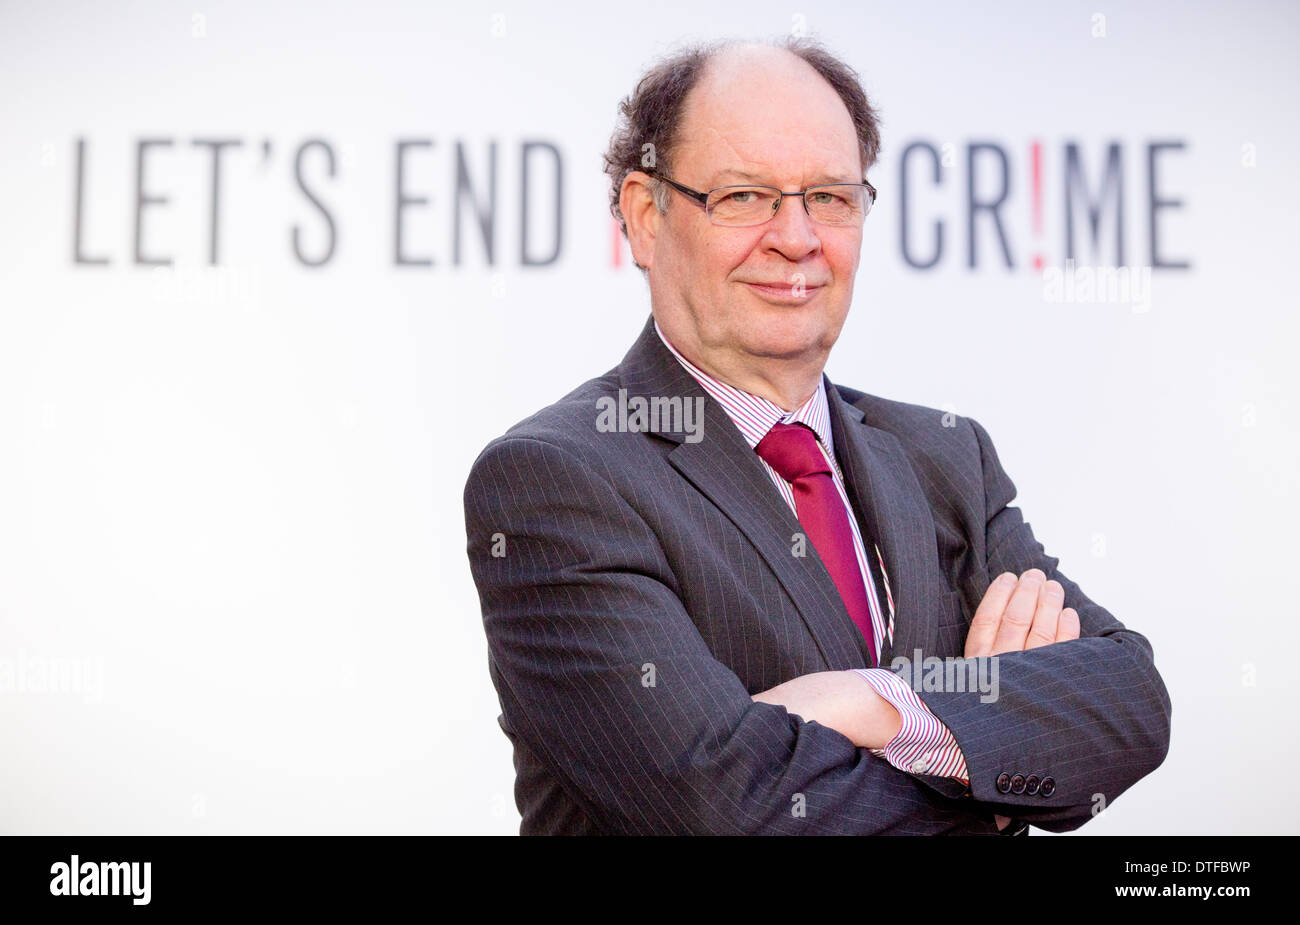 Manchester's hate crime strategy at Manchester Town Hall Cllr Jim Battle - Stock Image